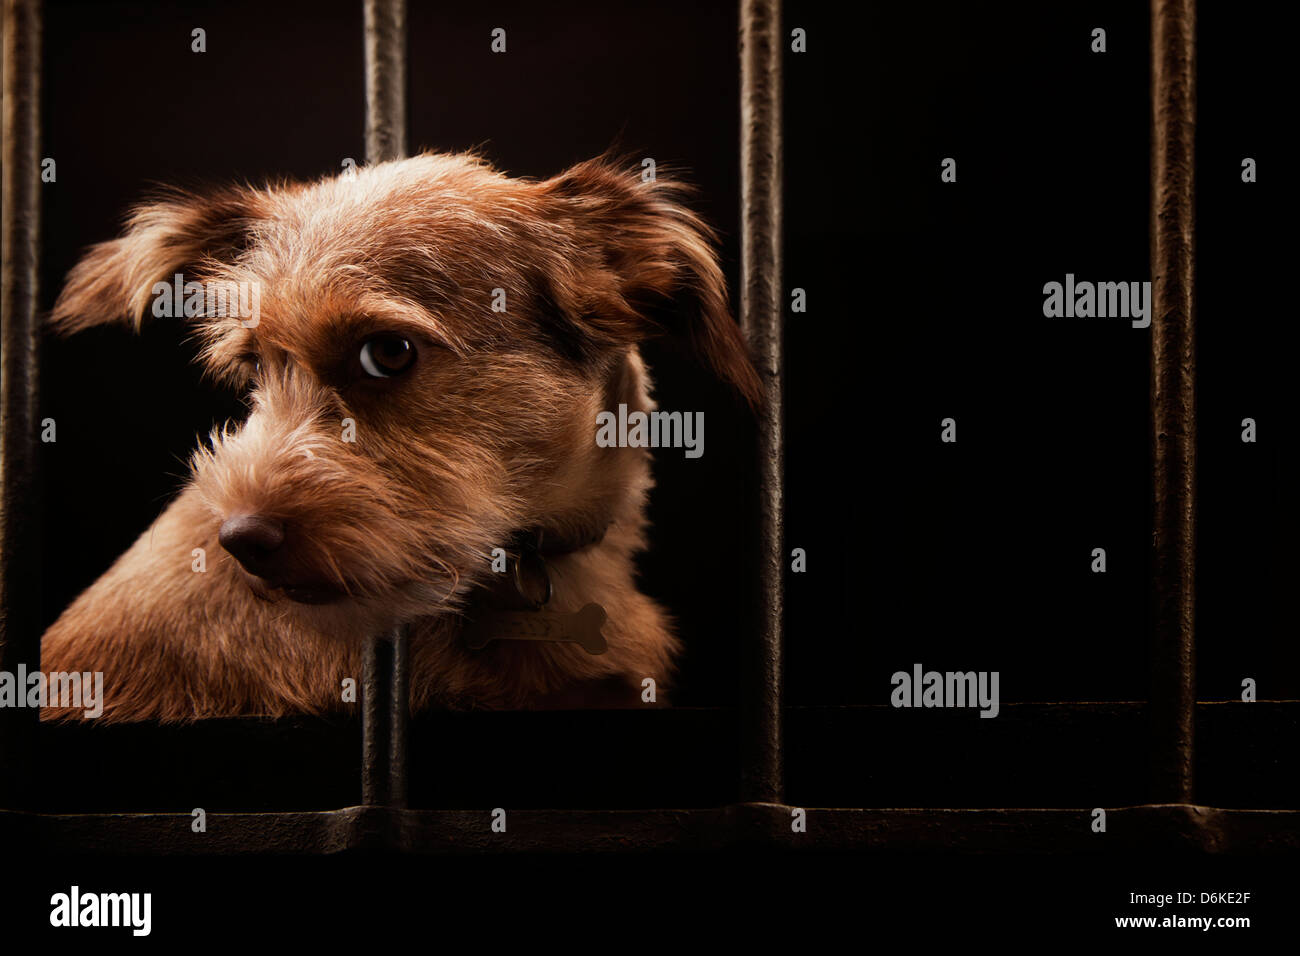 A dog in search of freedom - Stock Image